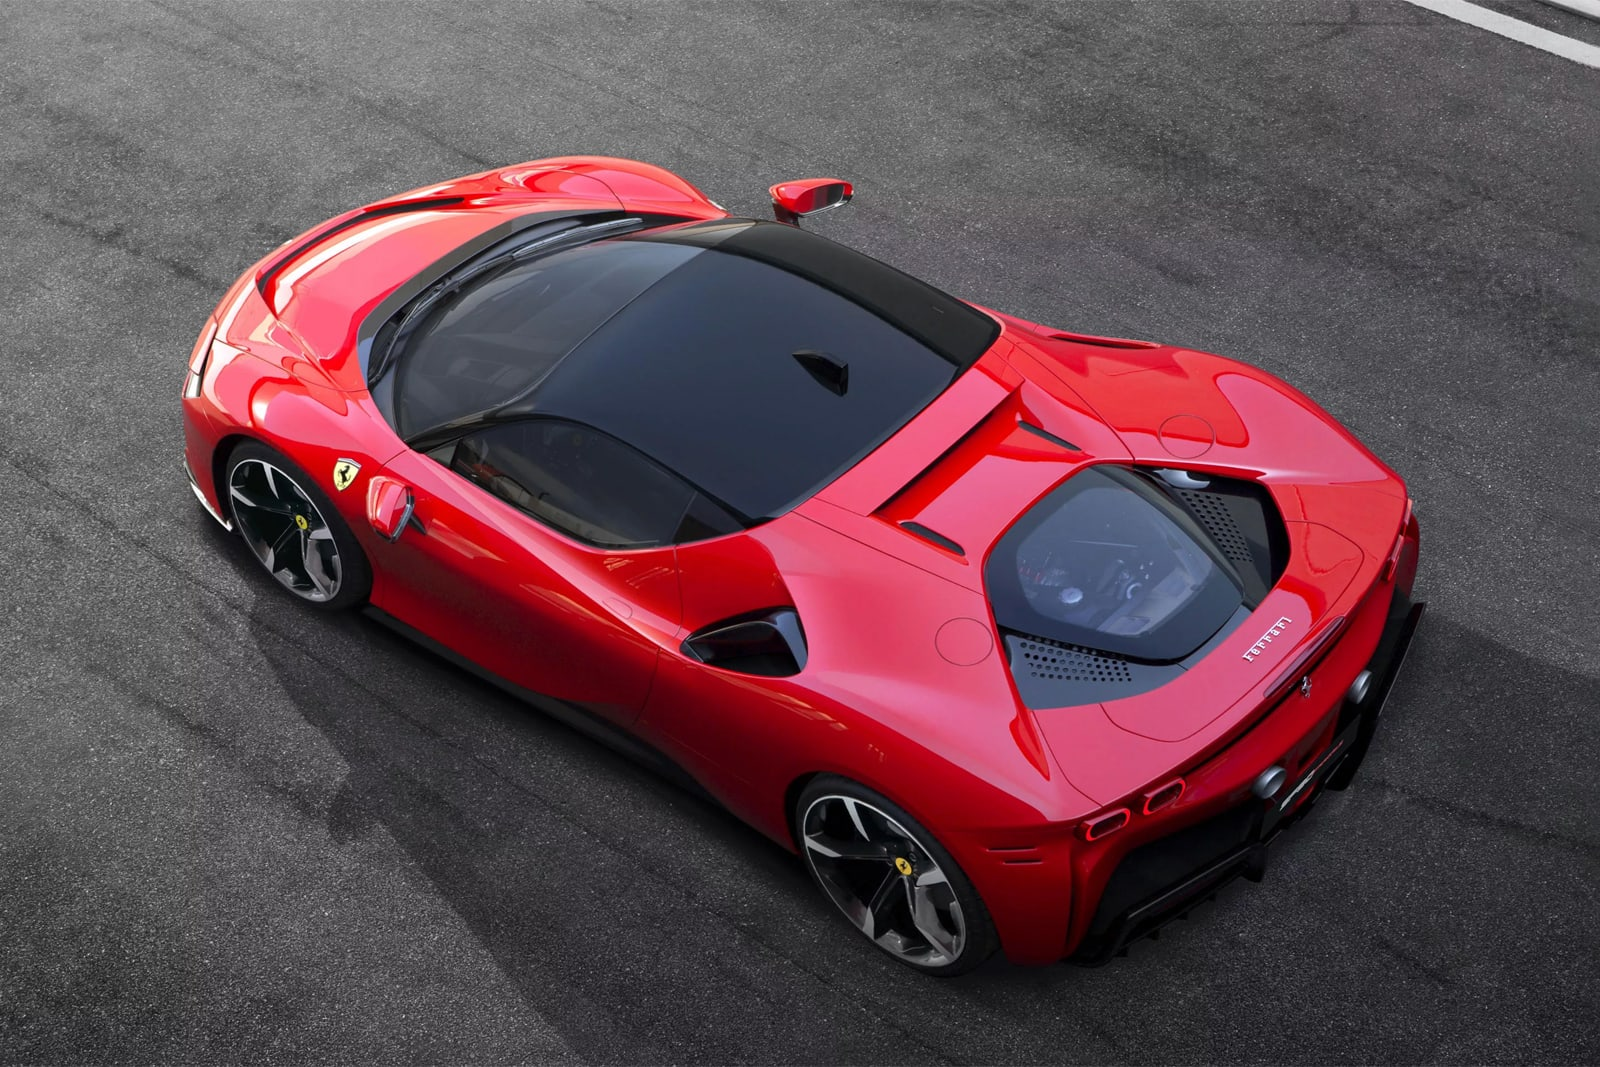 Ferrari's first production plug-in hybrid is its fastest supercar yet